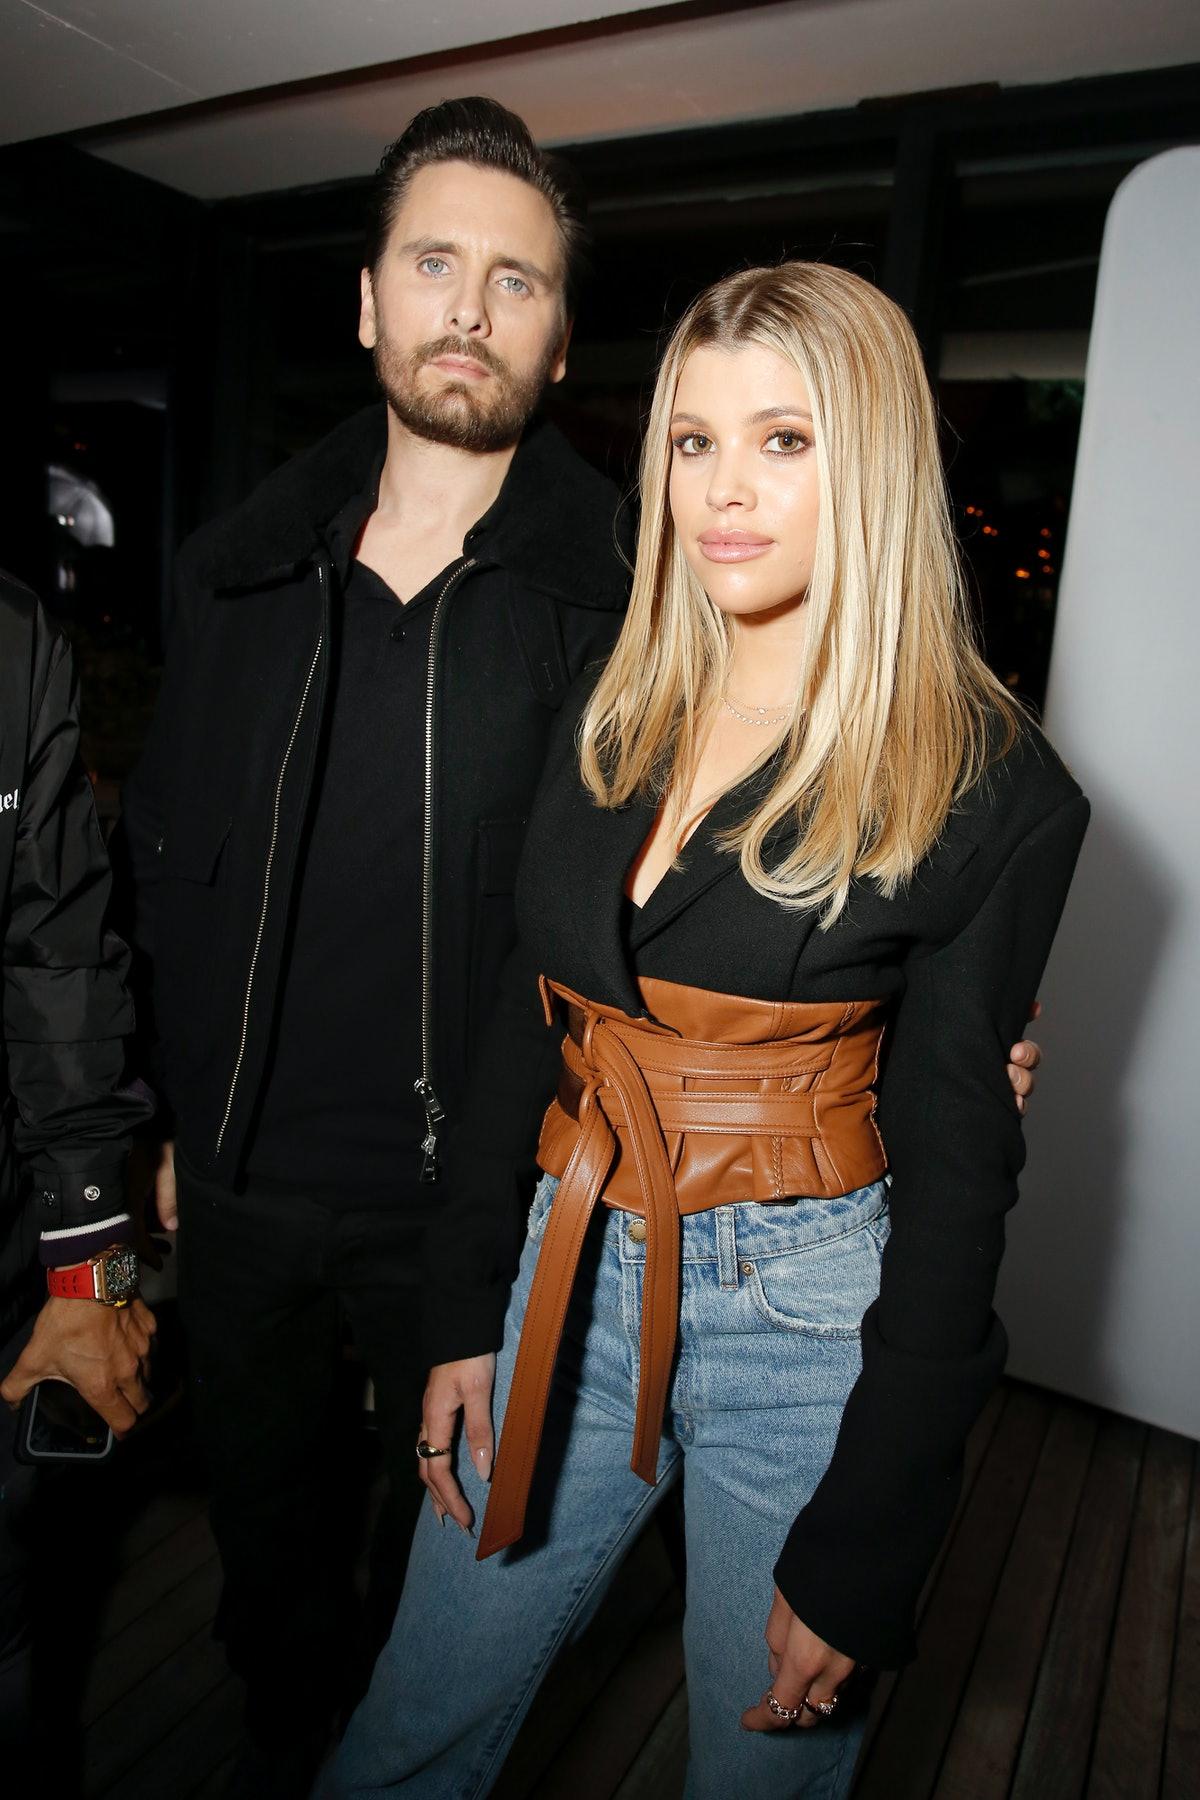 WEST HOLLYWOOD, CALIFORNIA - FEBRUARY 20: (L-R) Scott Disick and Sofia Richie attend Rolla's x Sofia Richie Launch Event at Harriet's Rooftop on February 20, 2020 in West Hollywood, California. (Photo by Rachel Murray/Getty Images for Rolla's)